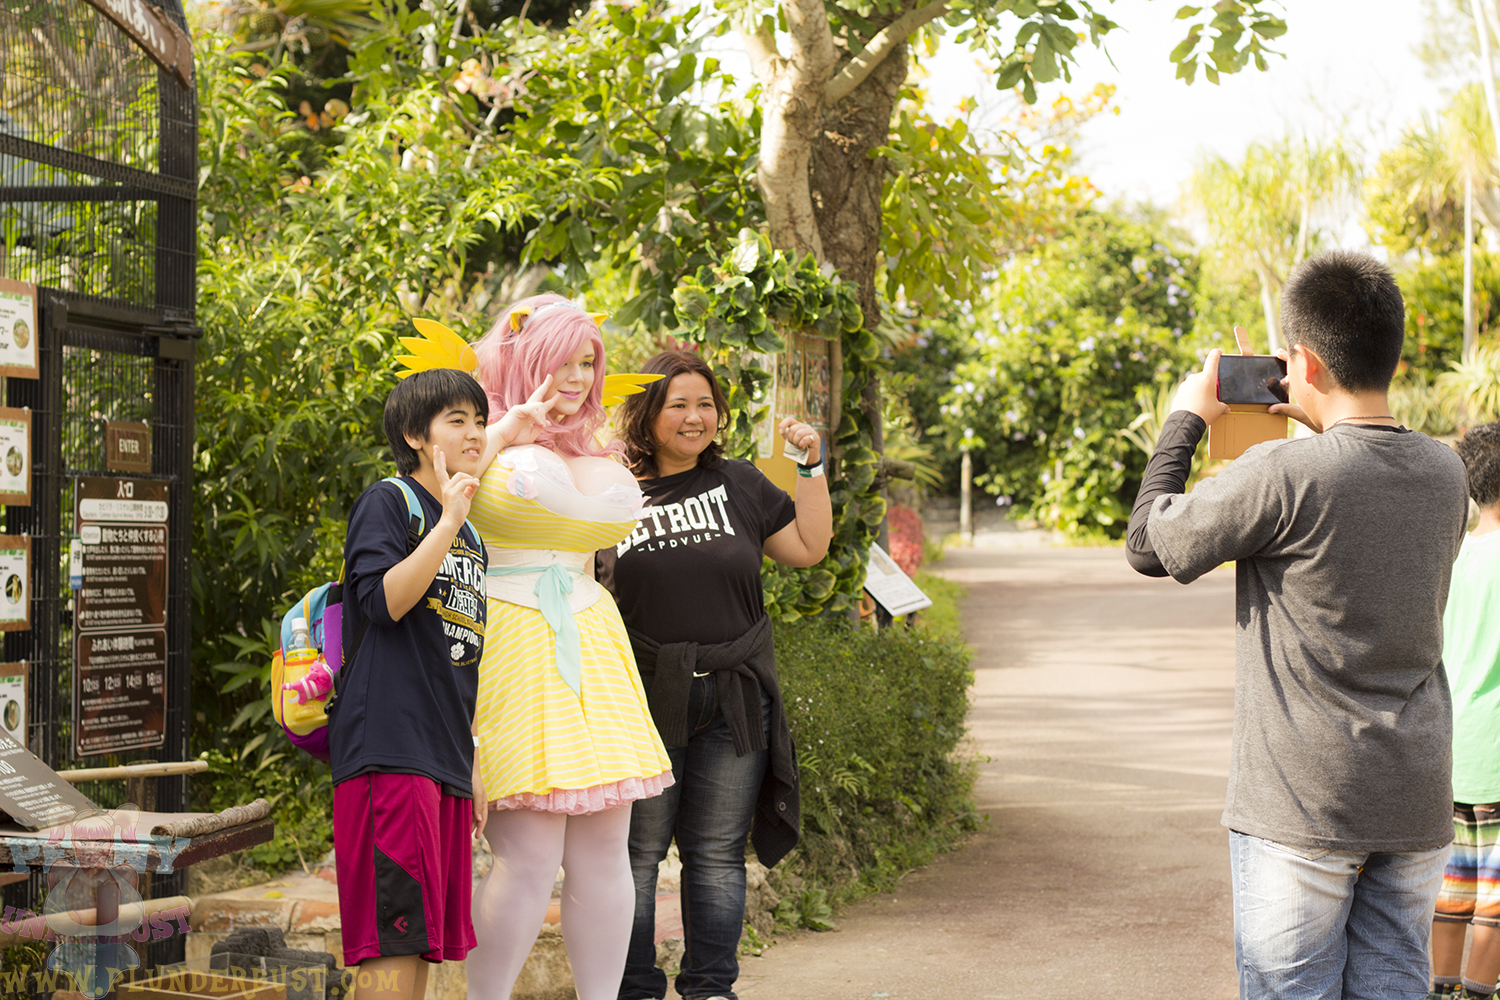 A few groups of people asked to take photos with me- as is normal when I go into the public dressed this way. =p